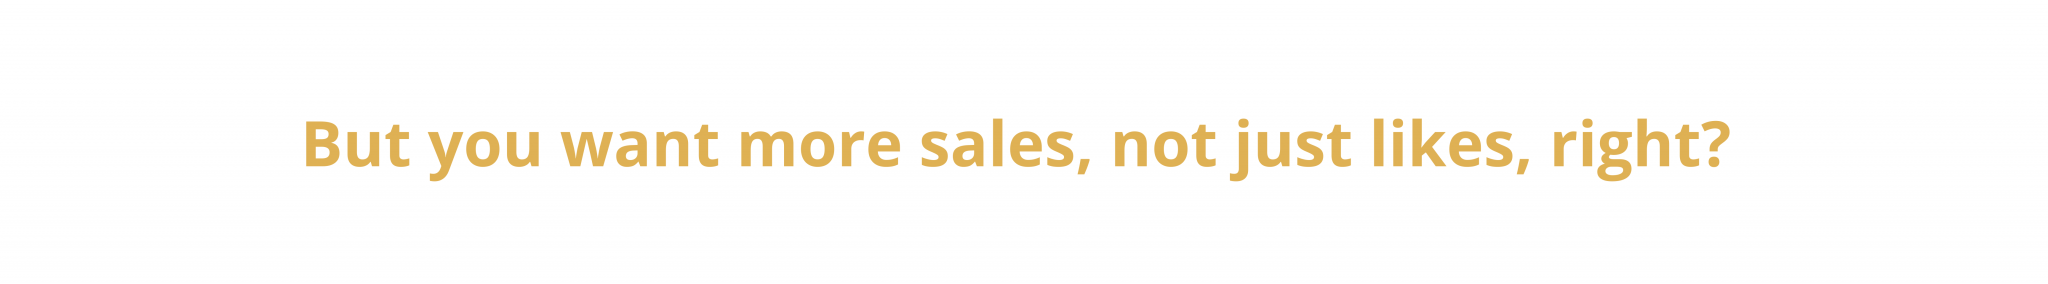 But you want more sales, not just likes, right?